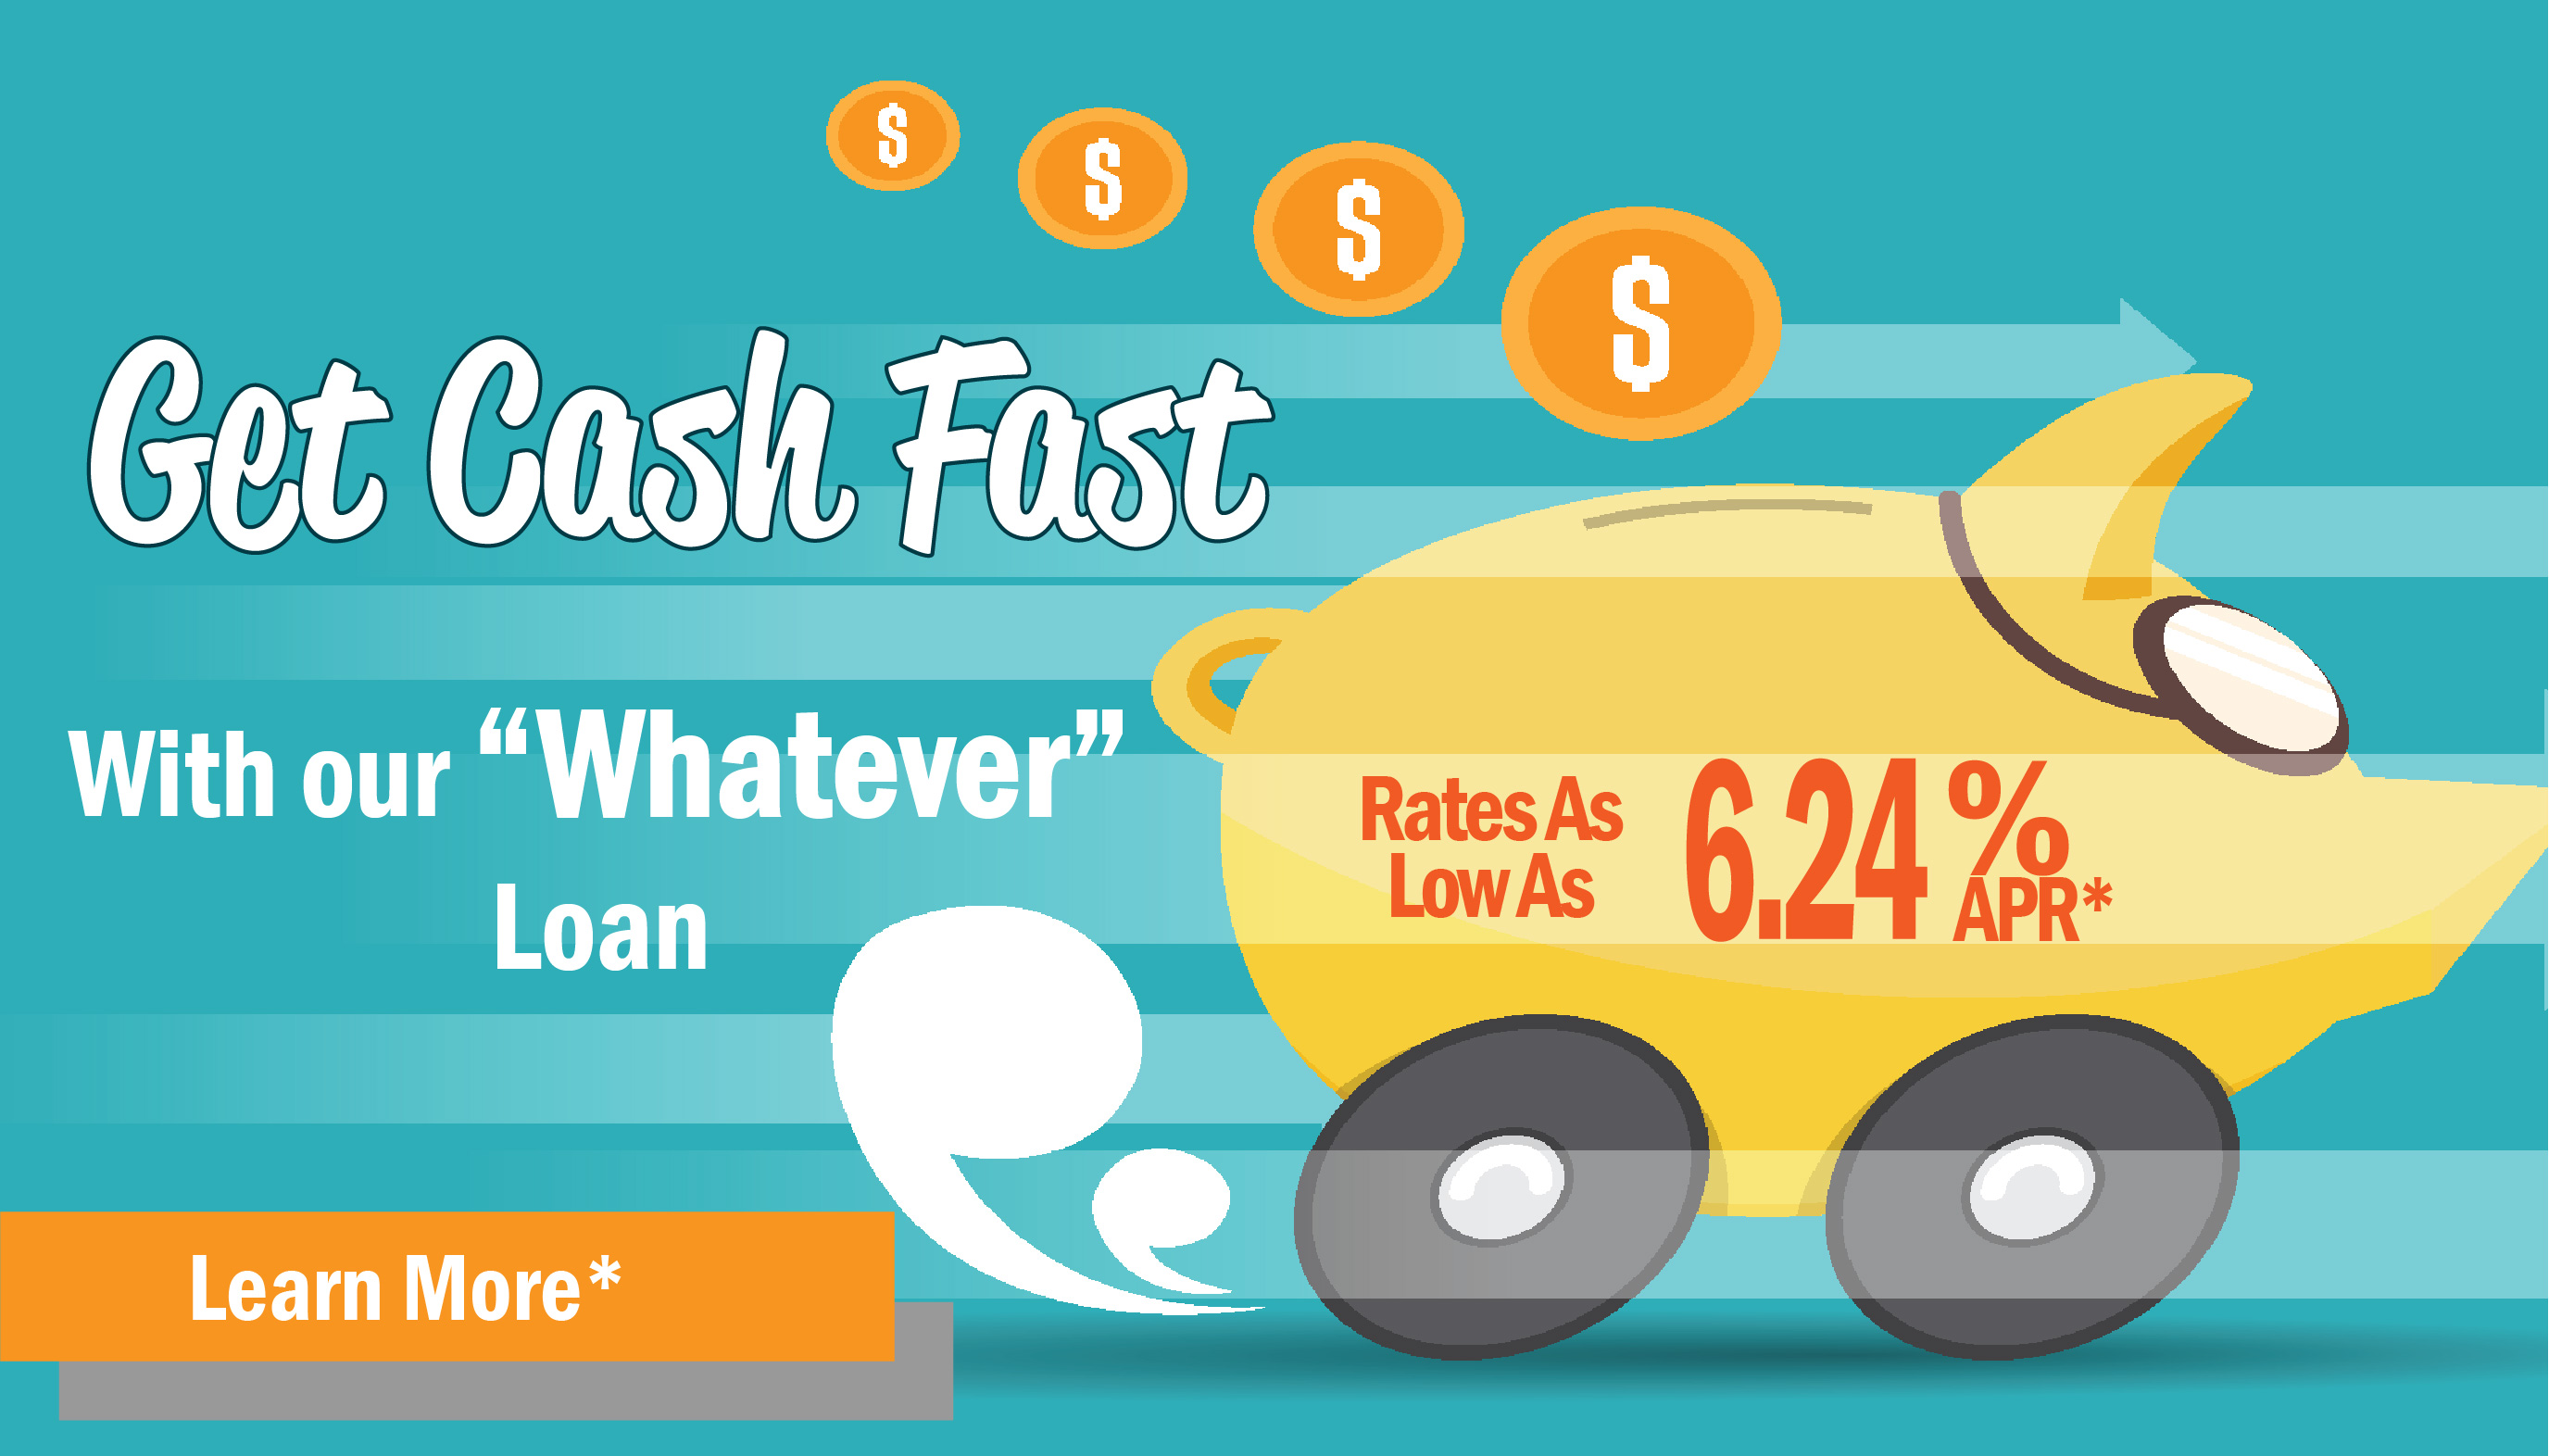 Get Cash Fast with our